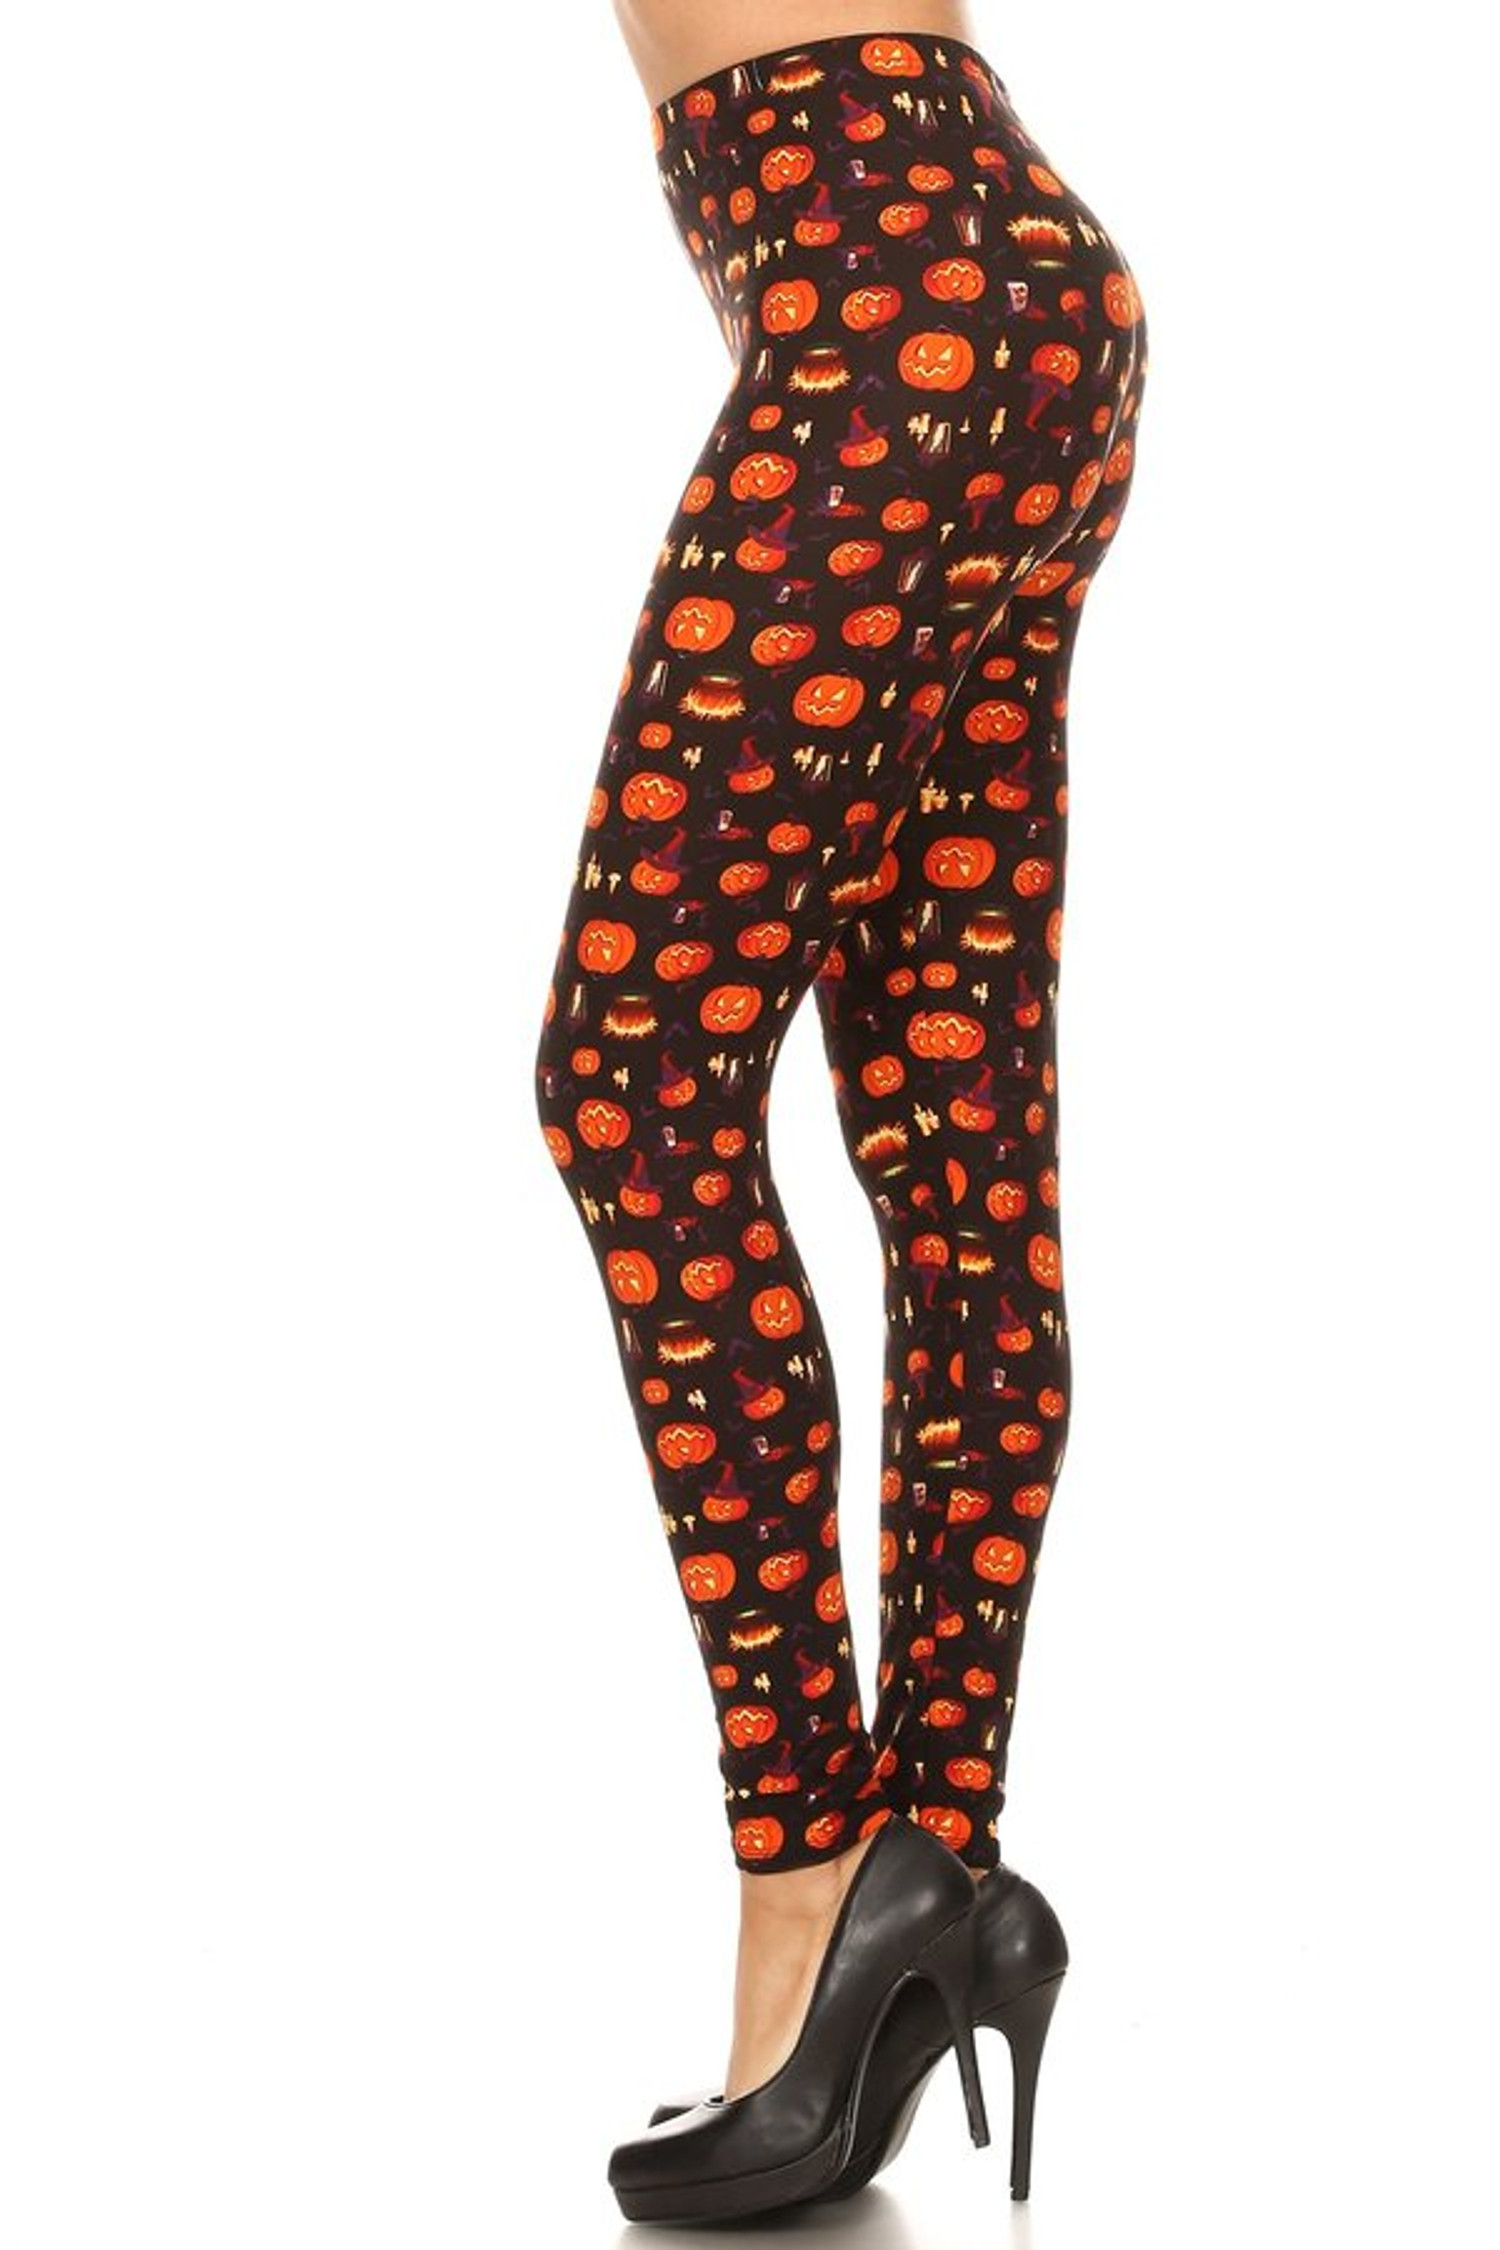 Brushed Pumpkins Cauldrons and Candles Halloween Plus Size Leggings